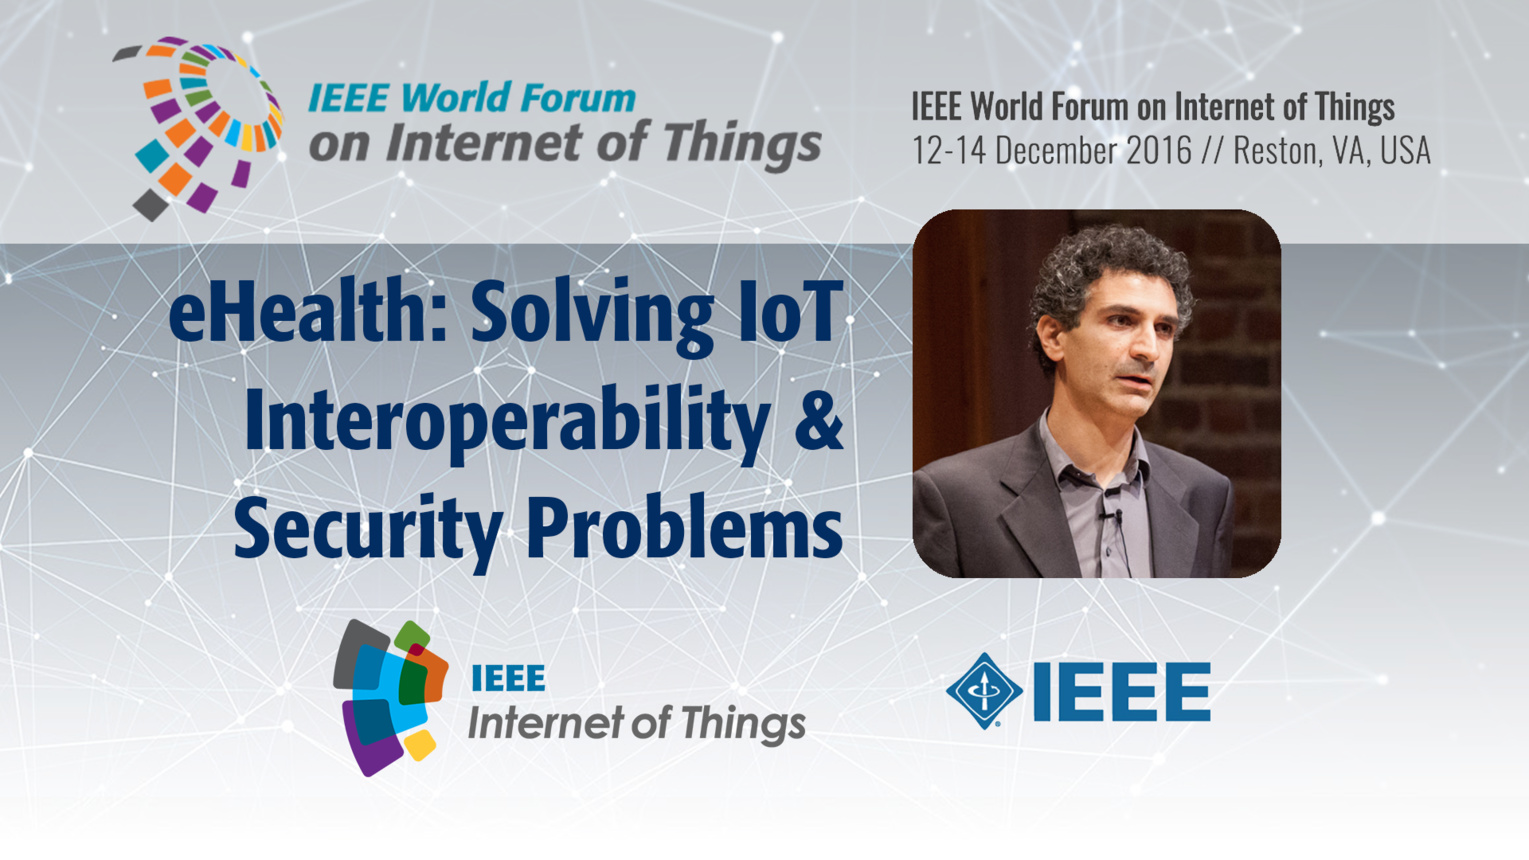 Raffaele Giaffreda: Solving IoT Interoperability and Security Problems in an eHealth Context: WF-IoT 2016